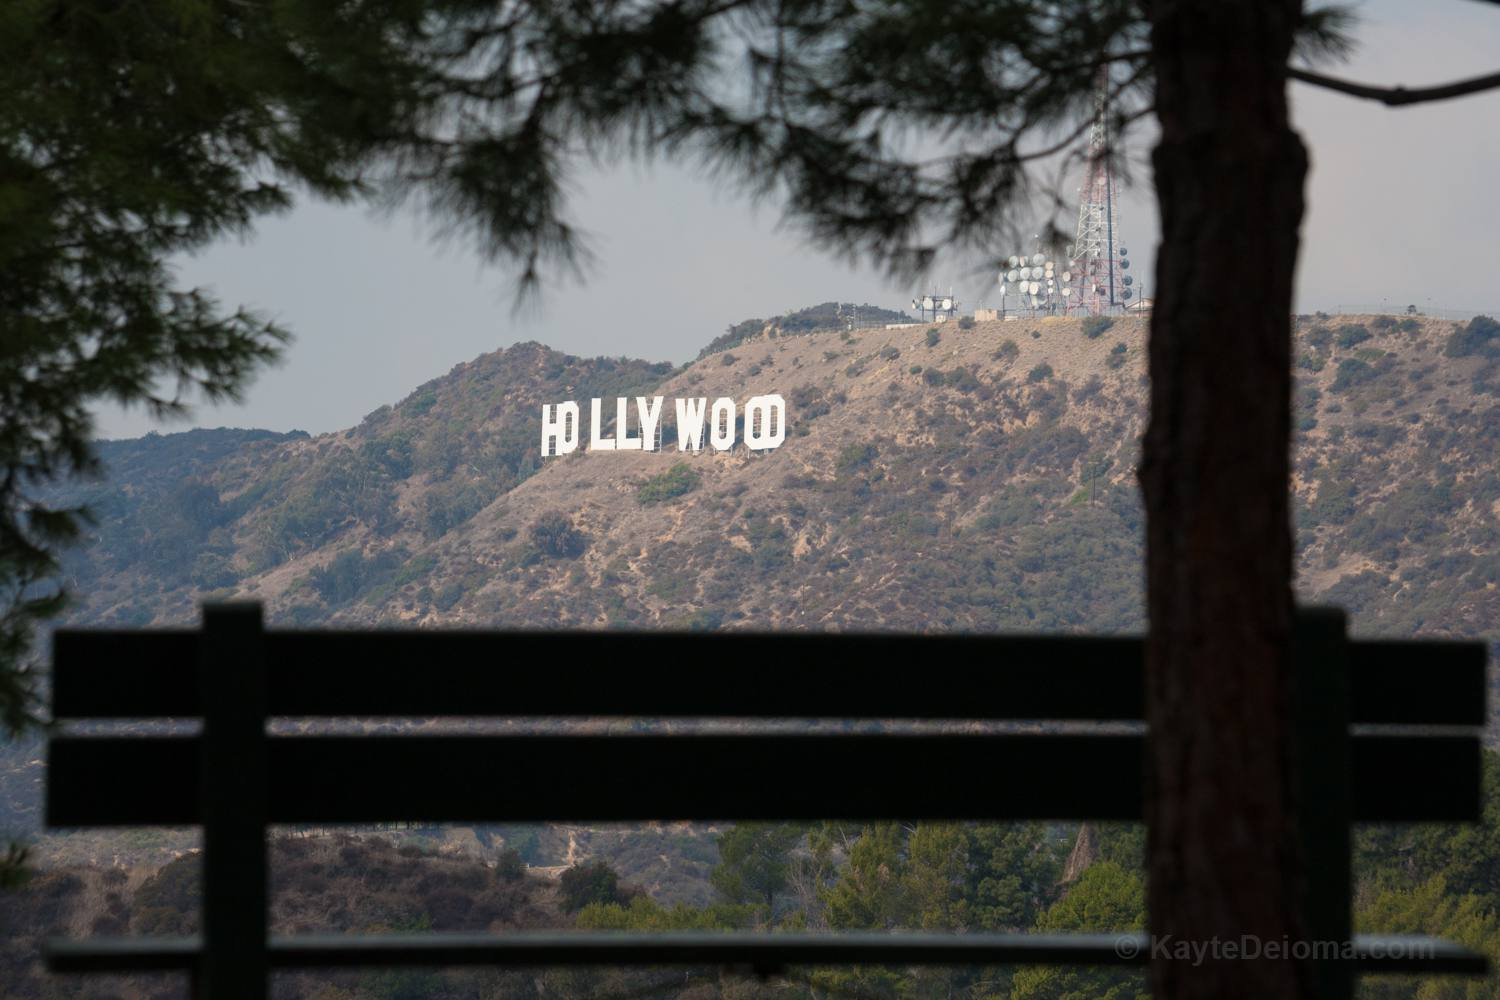 View of the Hollywood Sign from Mt. Hollywood Trail